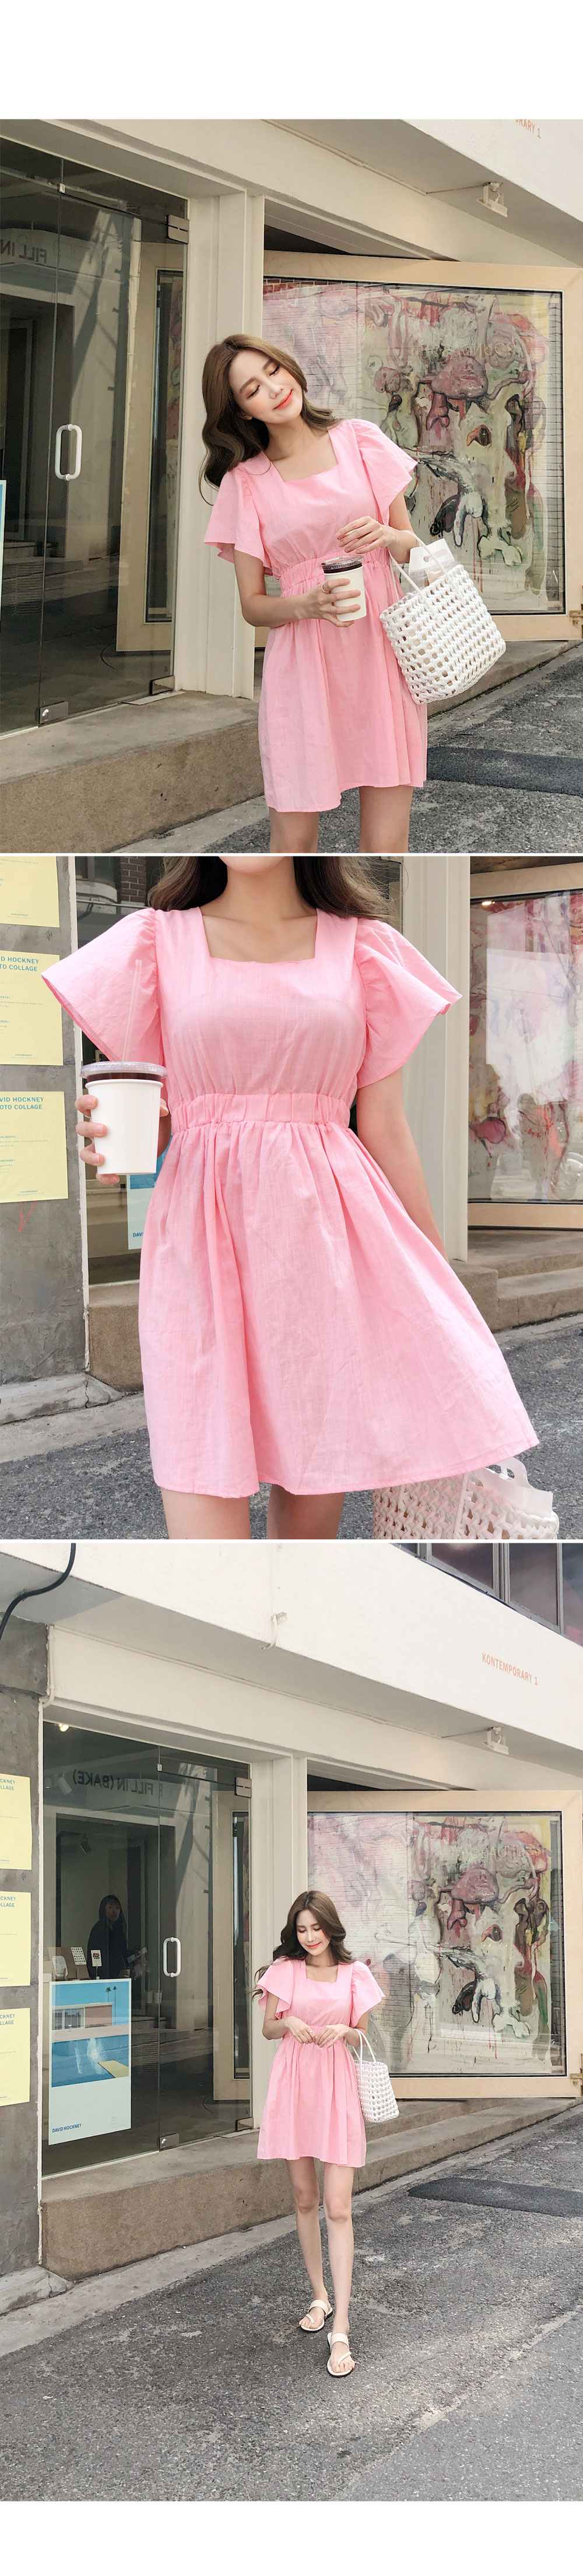 Wing pit sleeve dress